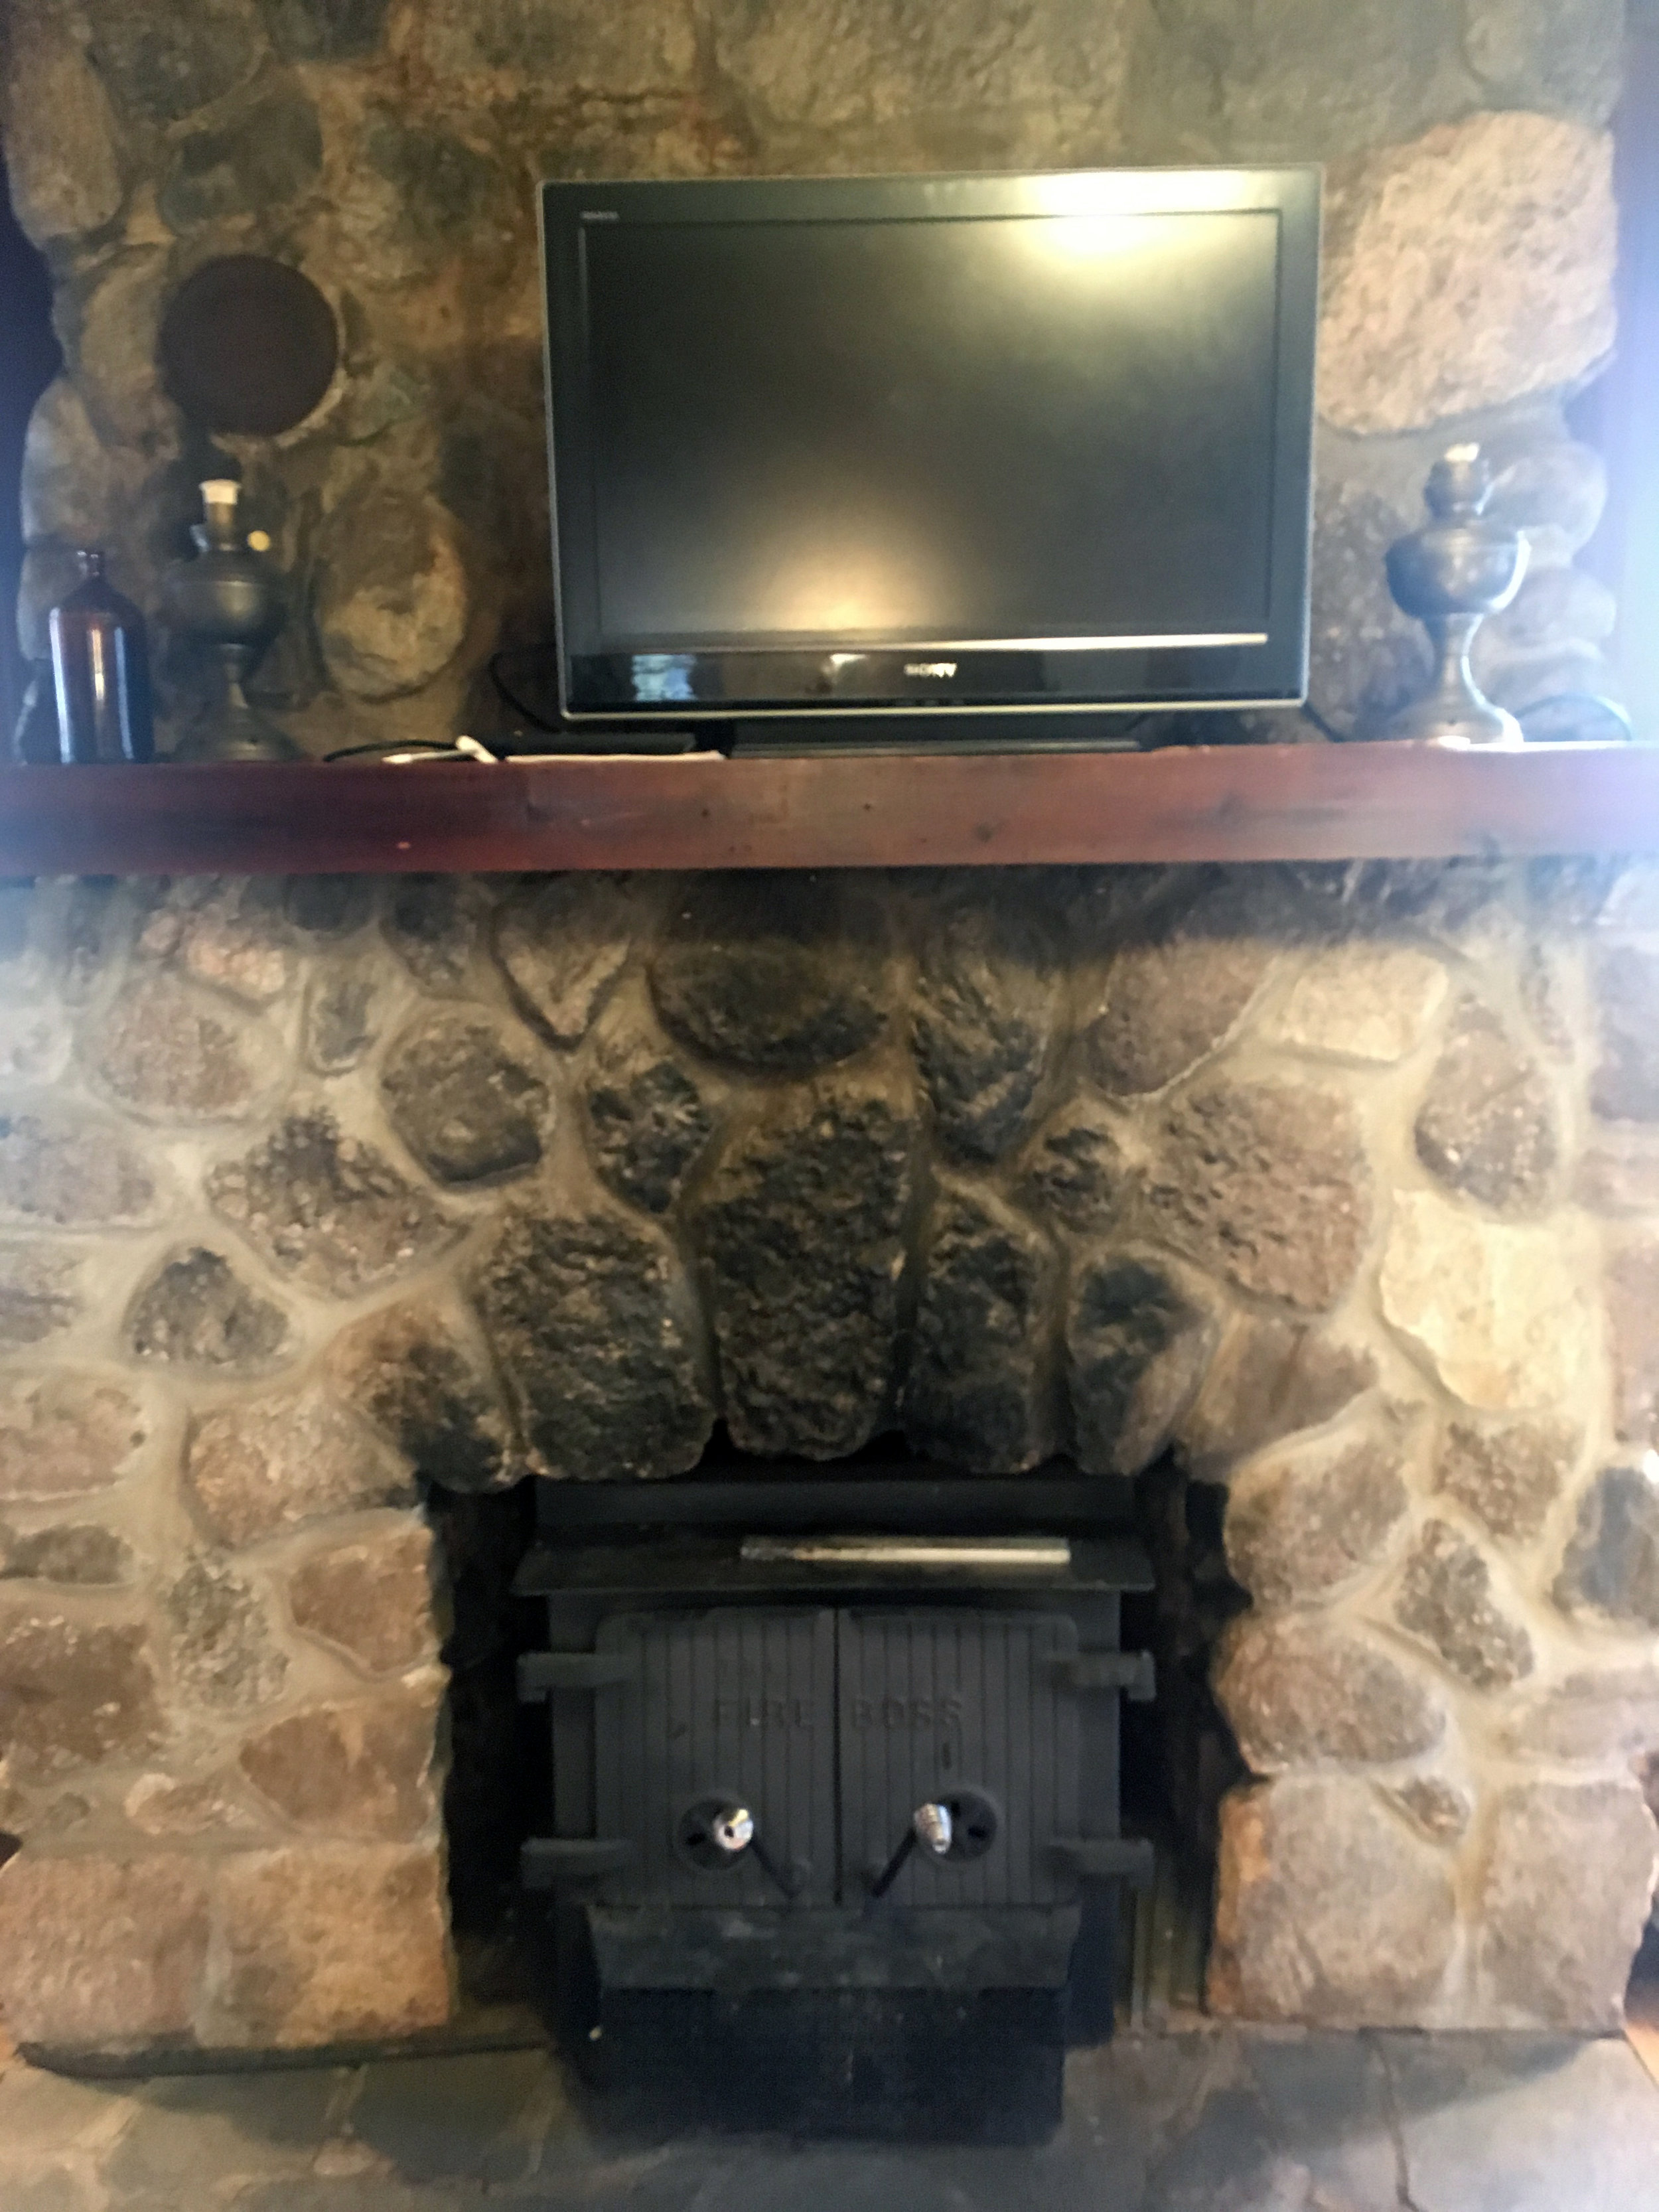 Fireplace has a working wood stove. Flat screen TV has an HDMI cable that can be plugged into computers for streaming.